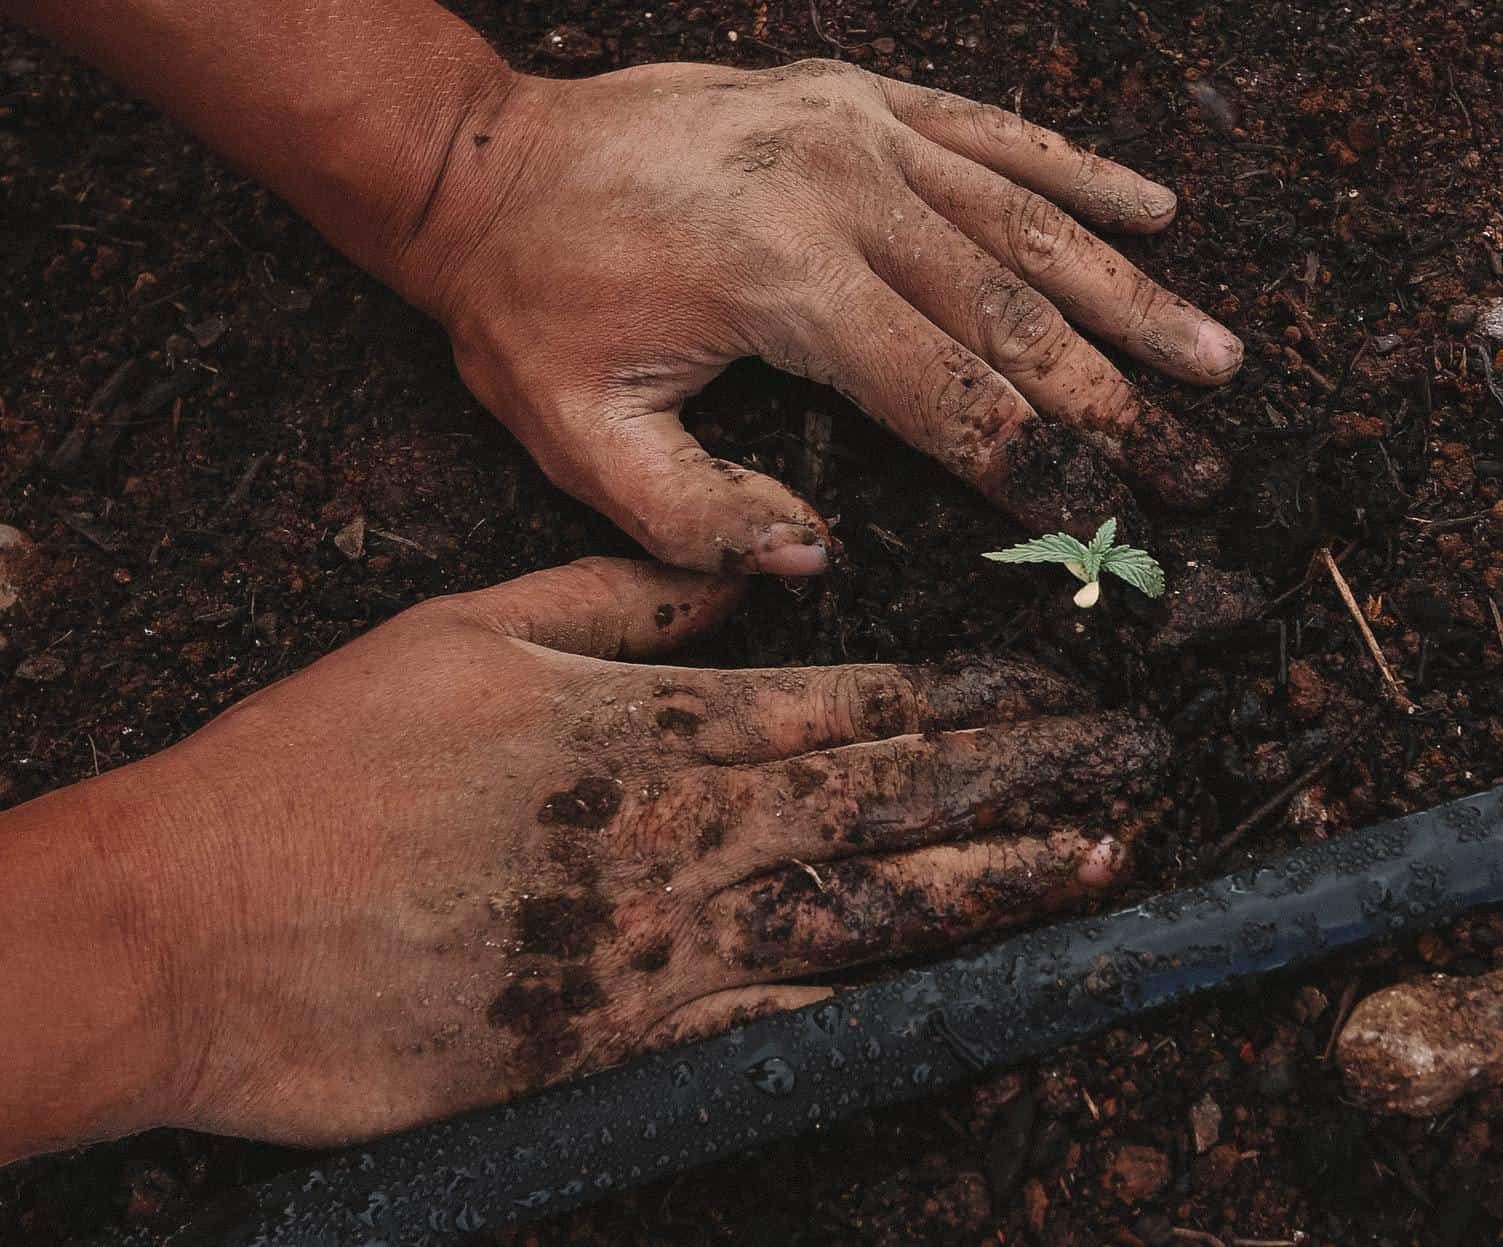 The 5 best soils for marijuana. Hands in soil planting marijuana.